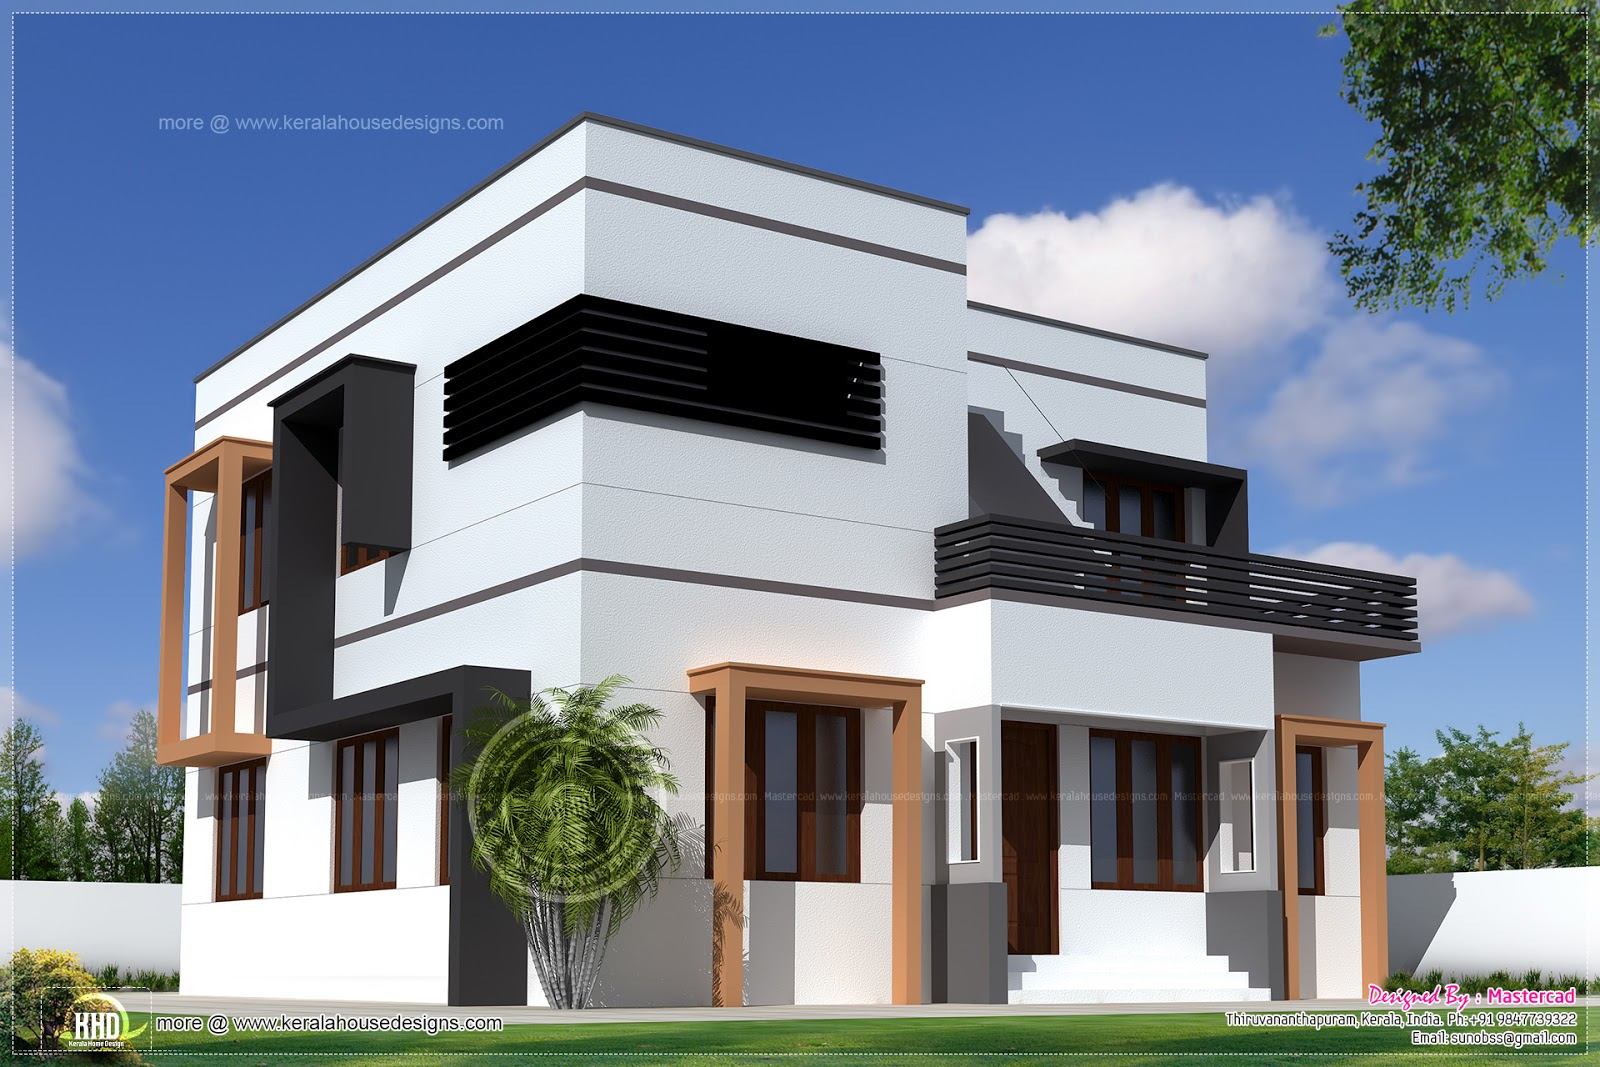 1627 square feet modern villa exterior house design plans for Modern villa house design